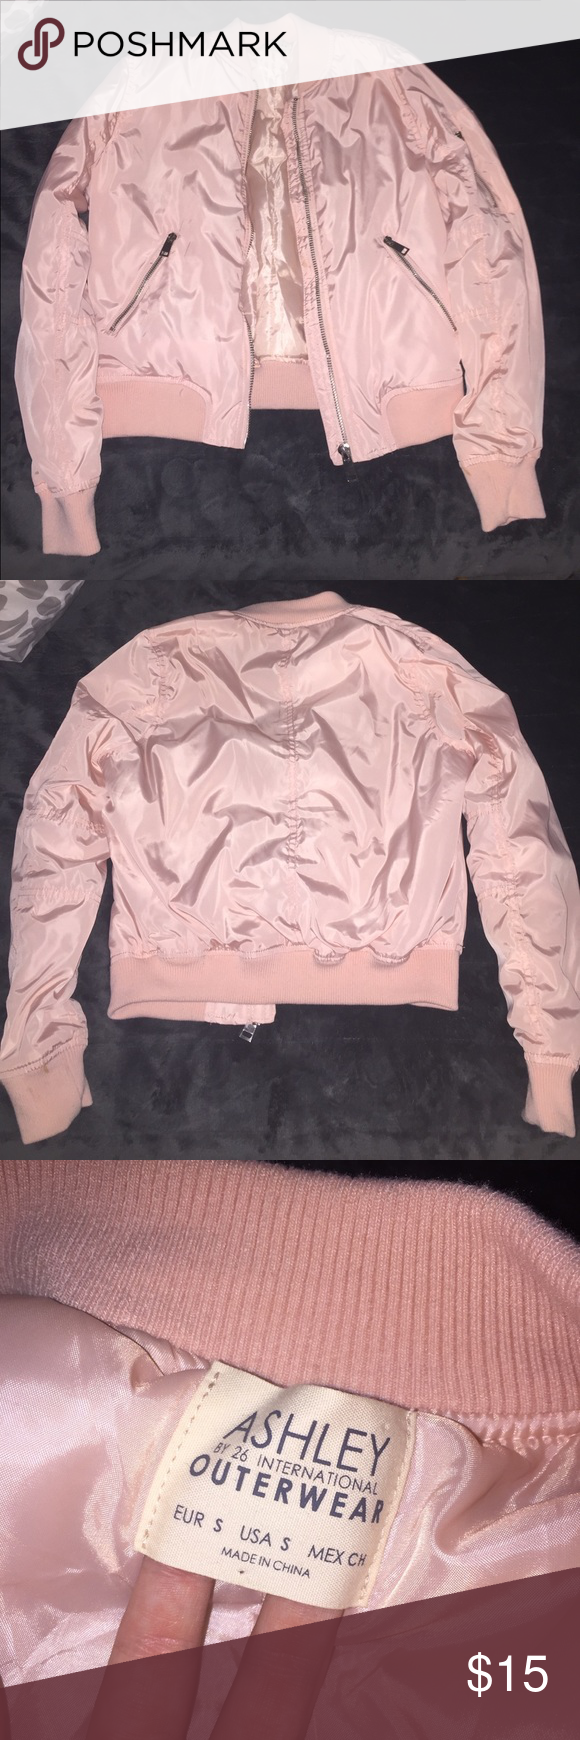 Pink Bomber Jacket Pink Bomber Jacket Maybe Worn Once Or Twice It Is A Size Small If You Would Like More Pictur Pink Bomber Jacket Pink Bomber Bomber Jacket [ 1740 x 580 Pixel ]